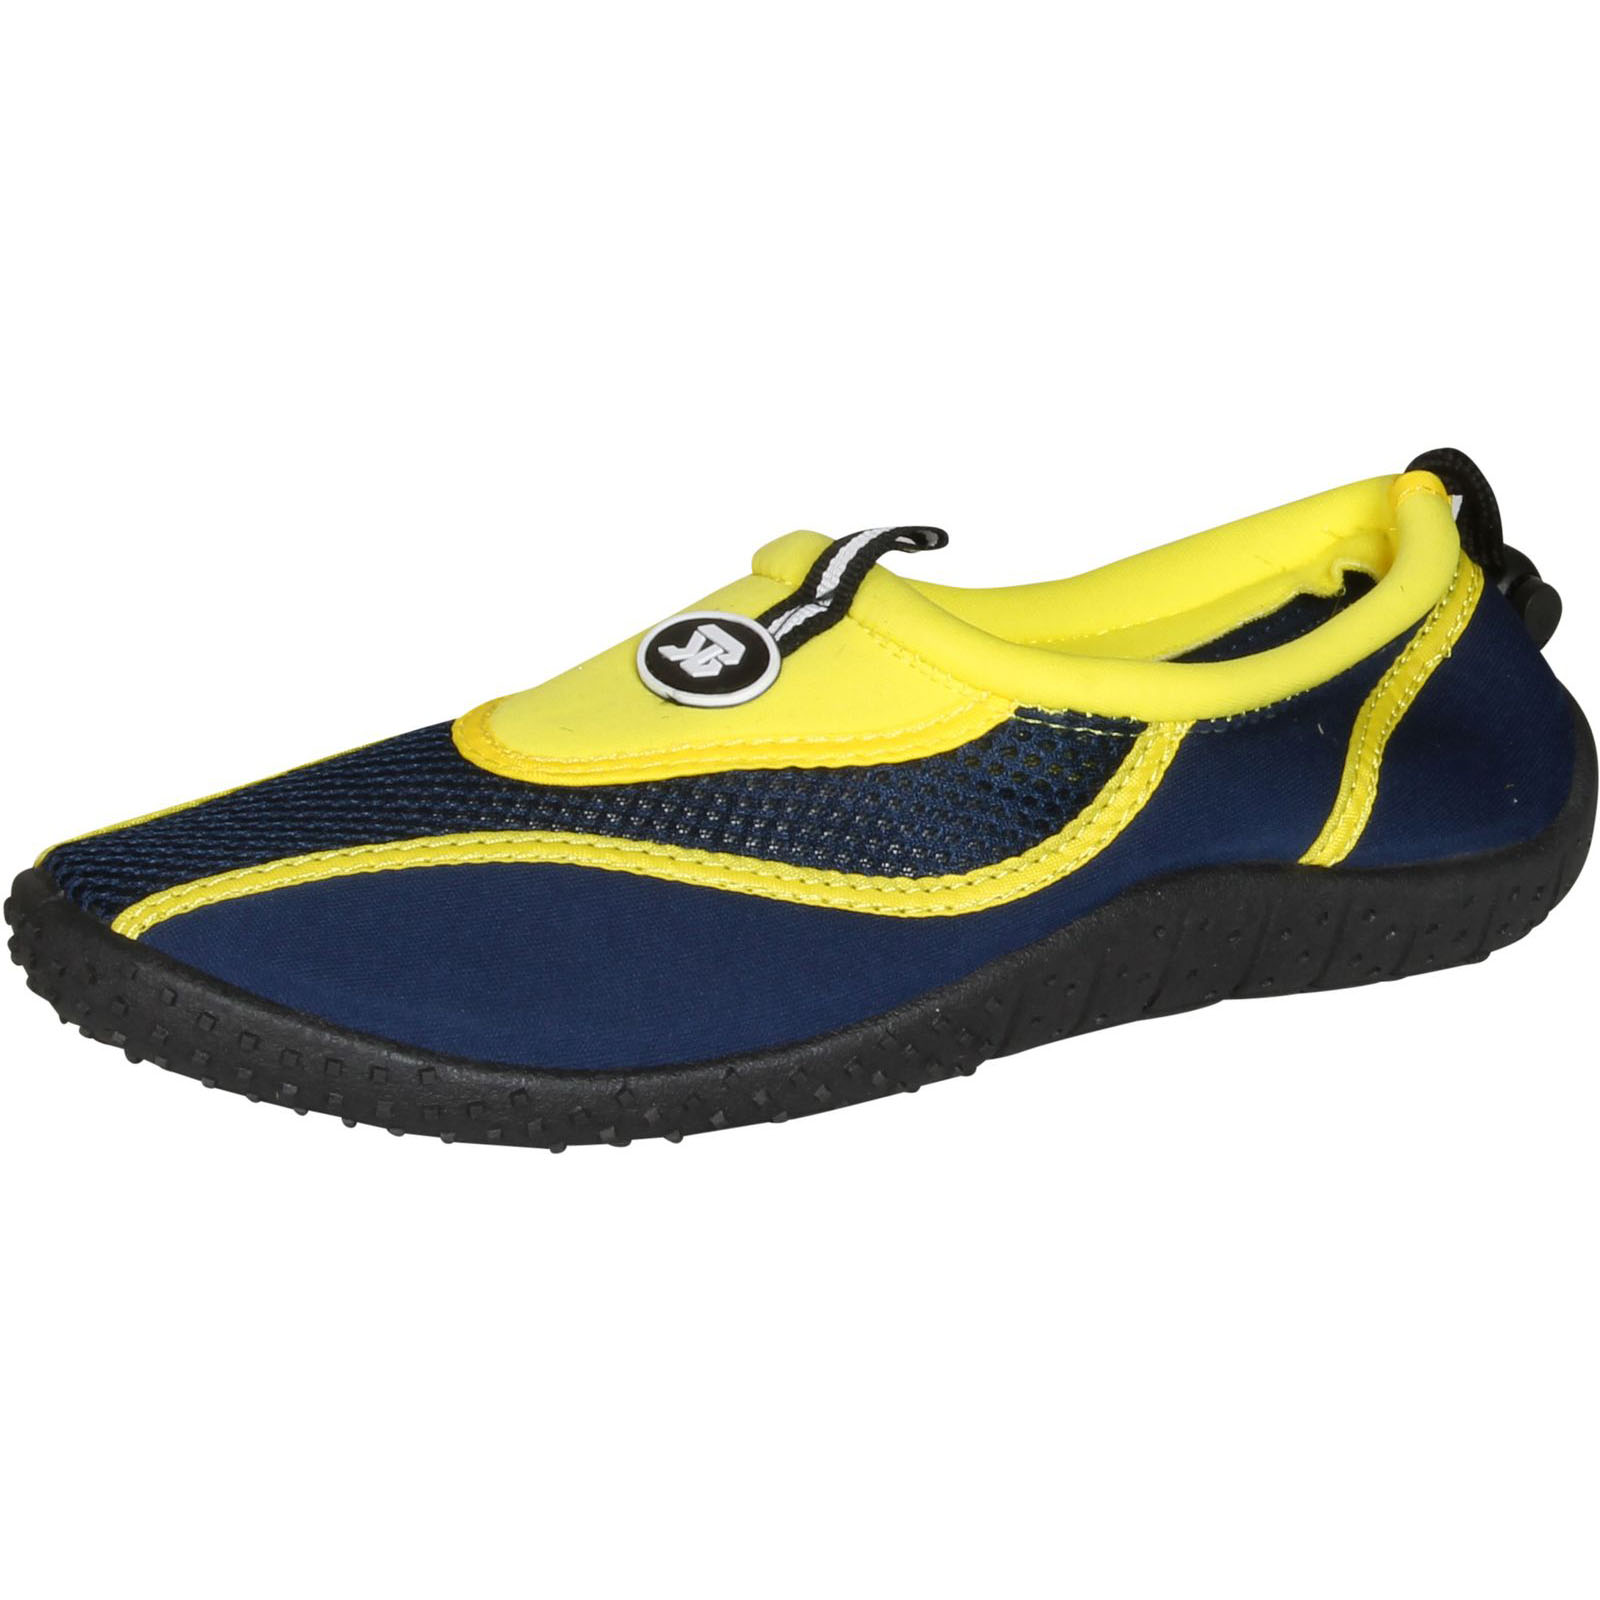 Sunville Men's Aqua Shoes Sandals Water